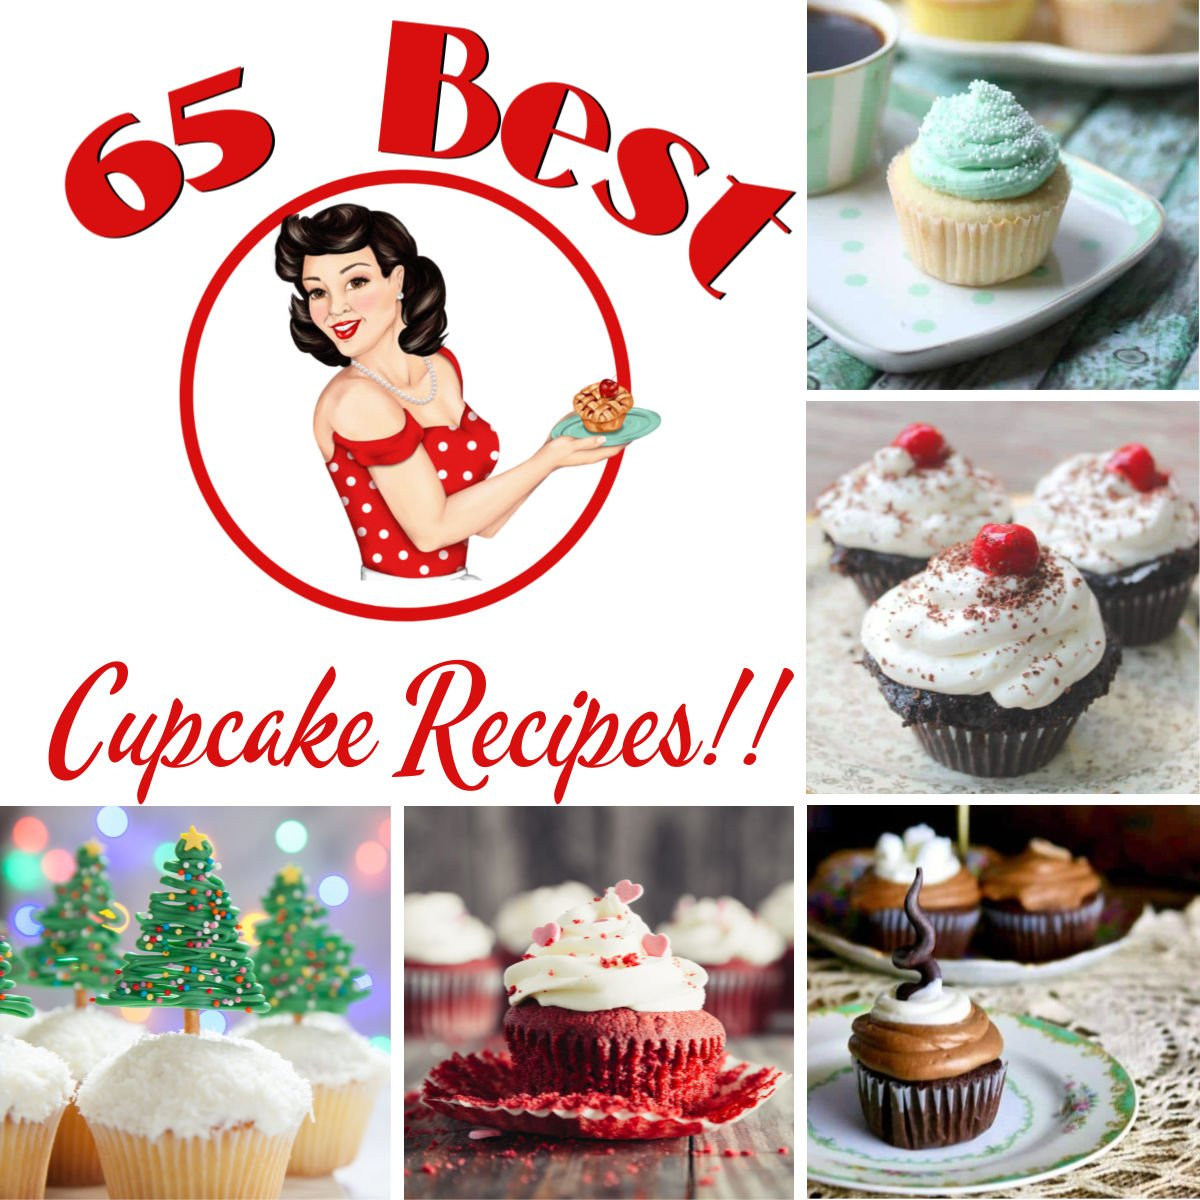 Collage of cupcake images with post title.